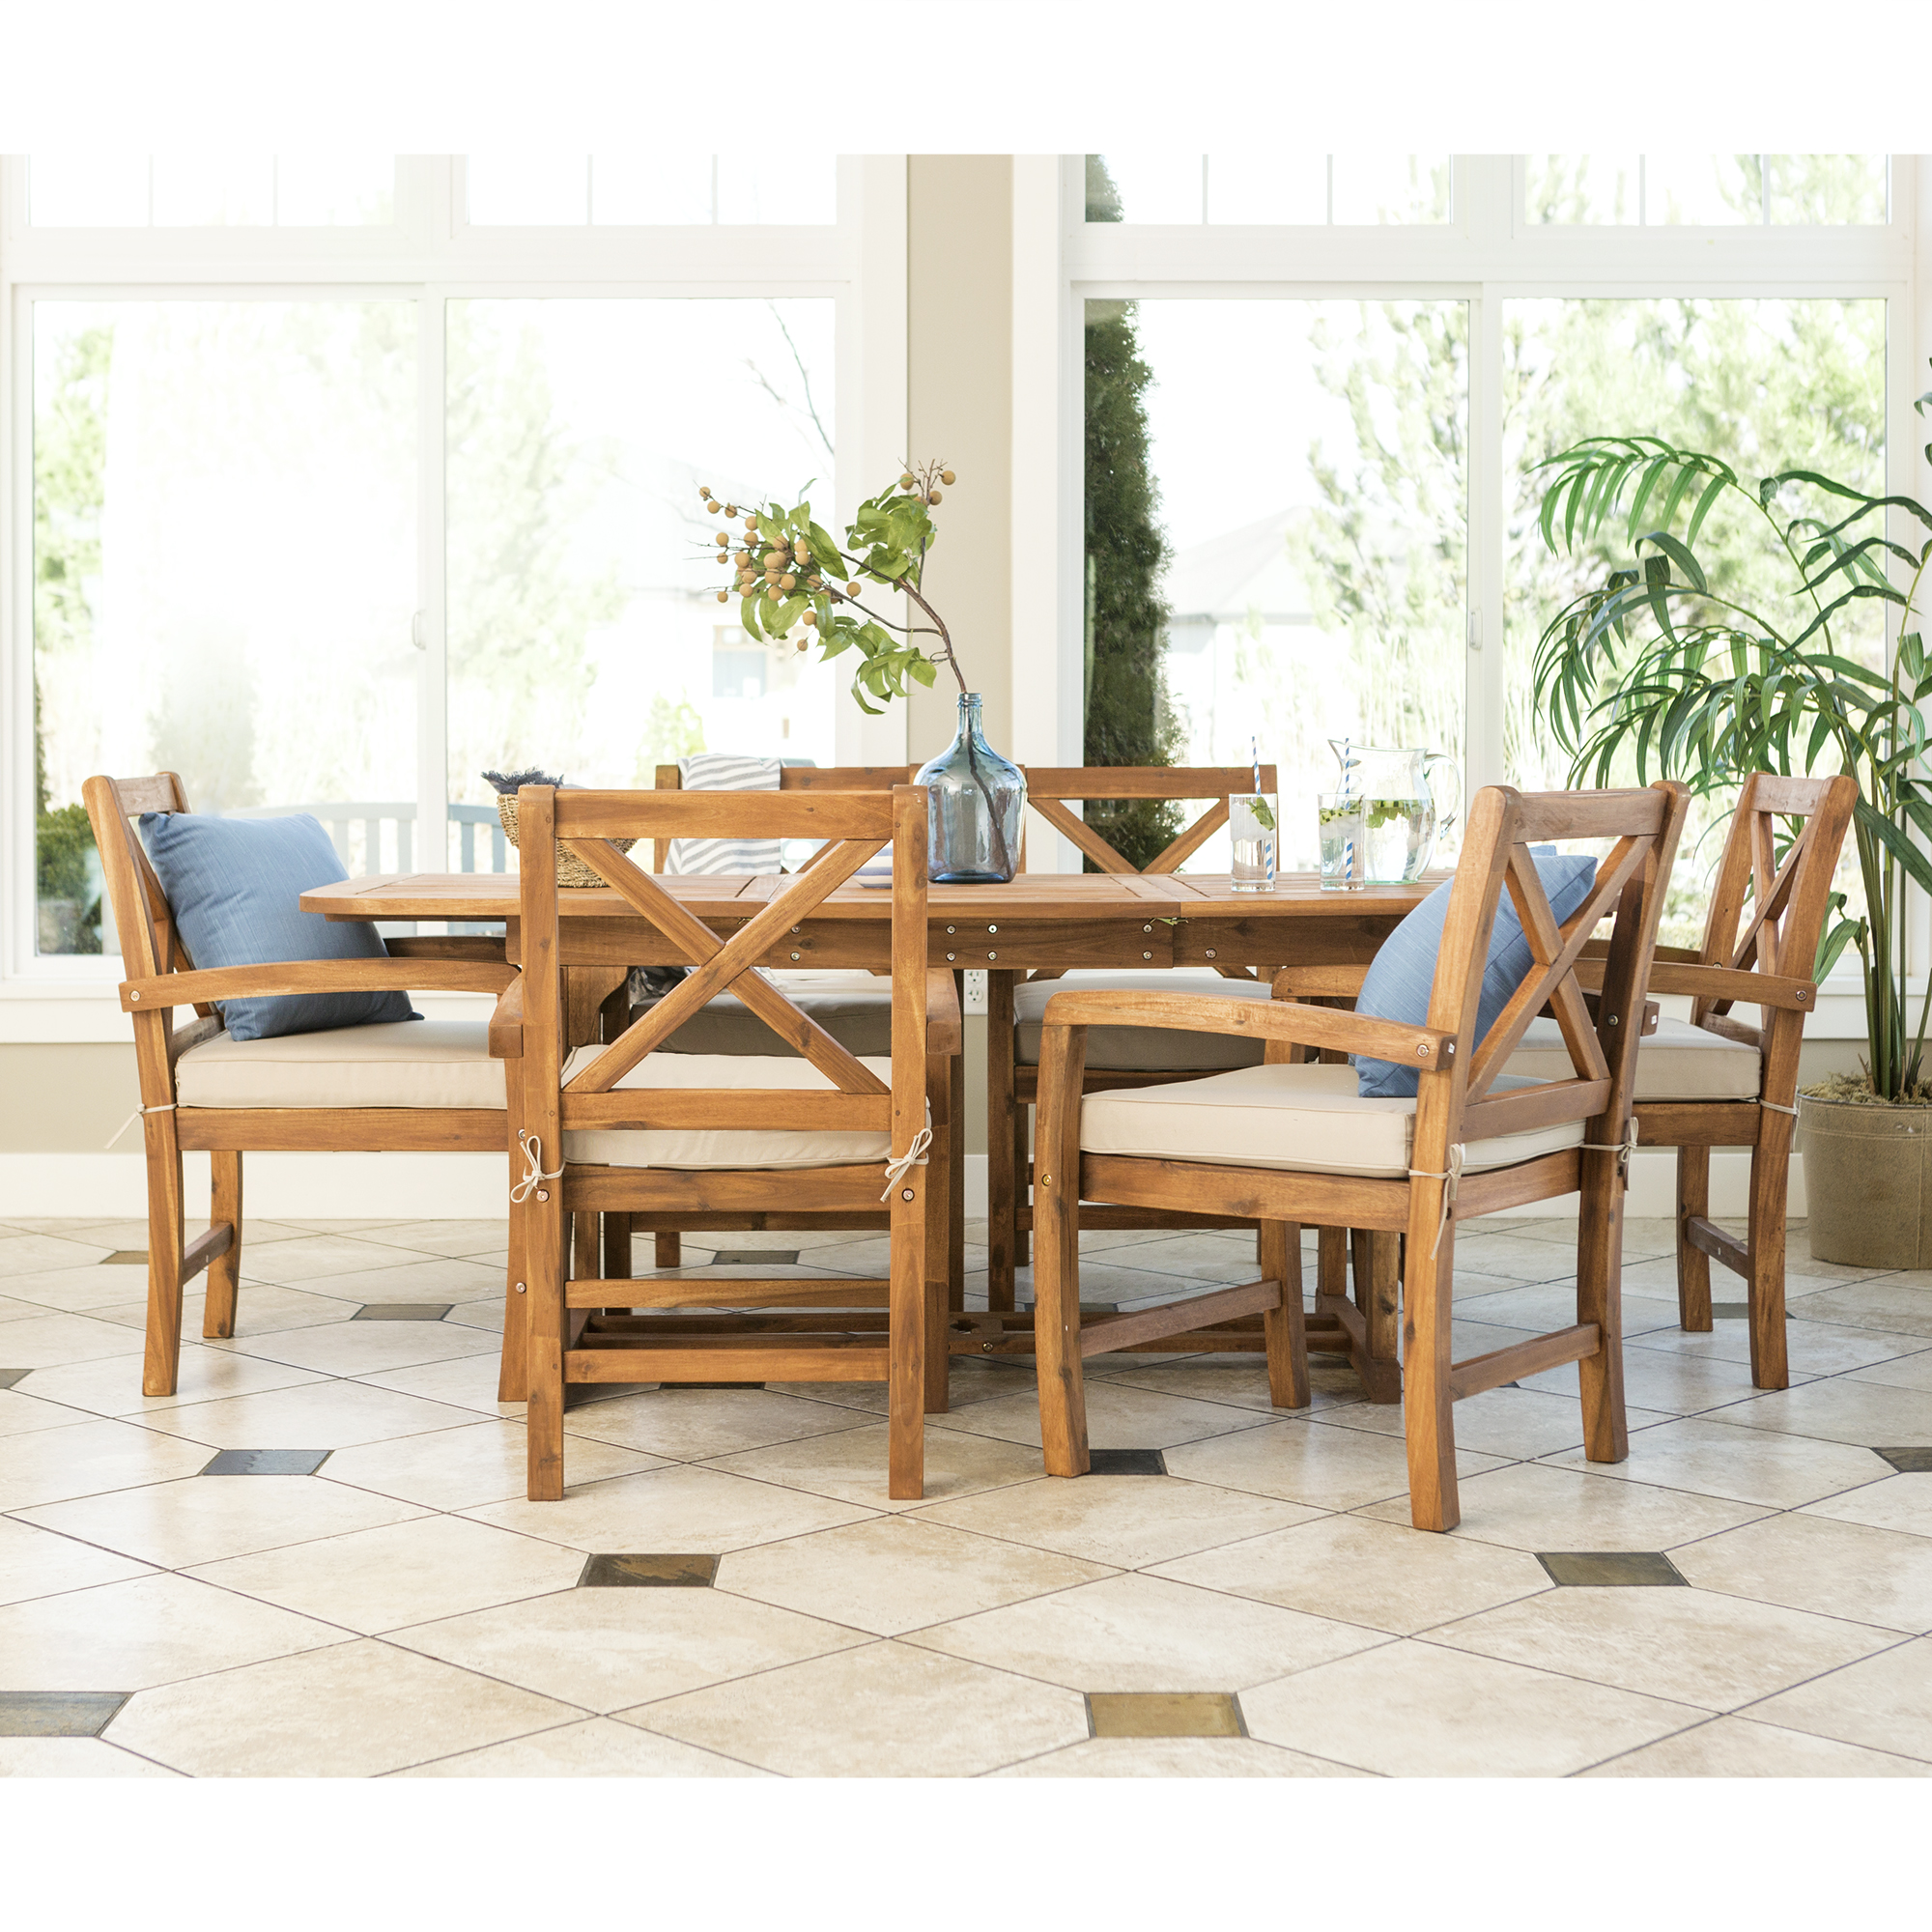 Manor Park 7-Piece X-Back Wood Outdoor Patio Dining Set with Cushions - Brown